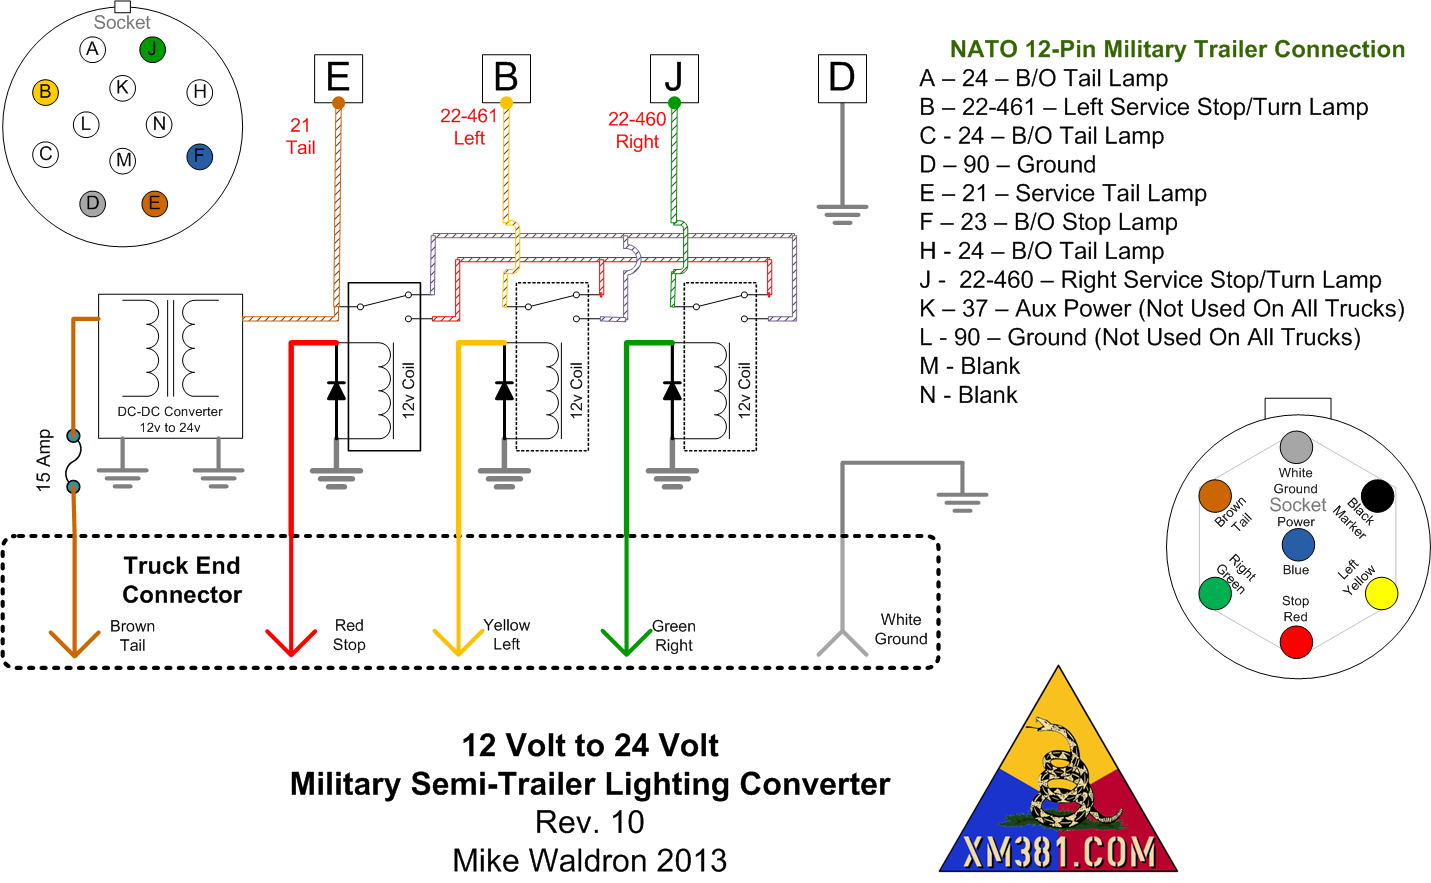 12 Volt 7 Pin Wiring Diagram Best Secret Tractor Trailer Led Lights Way Plug Simple Schema Rh 50 Aspire Atlantis De Symbols 24